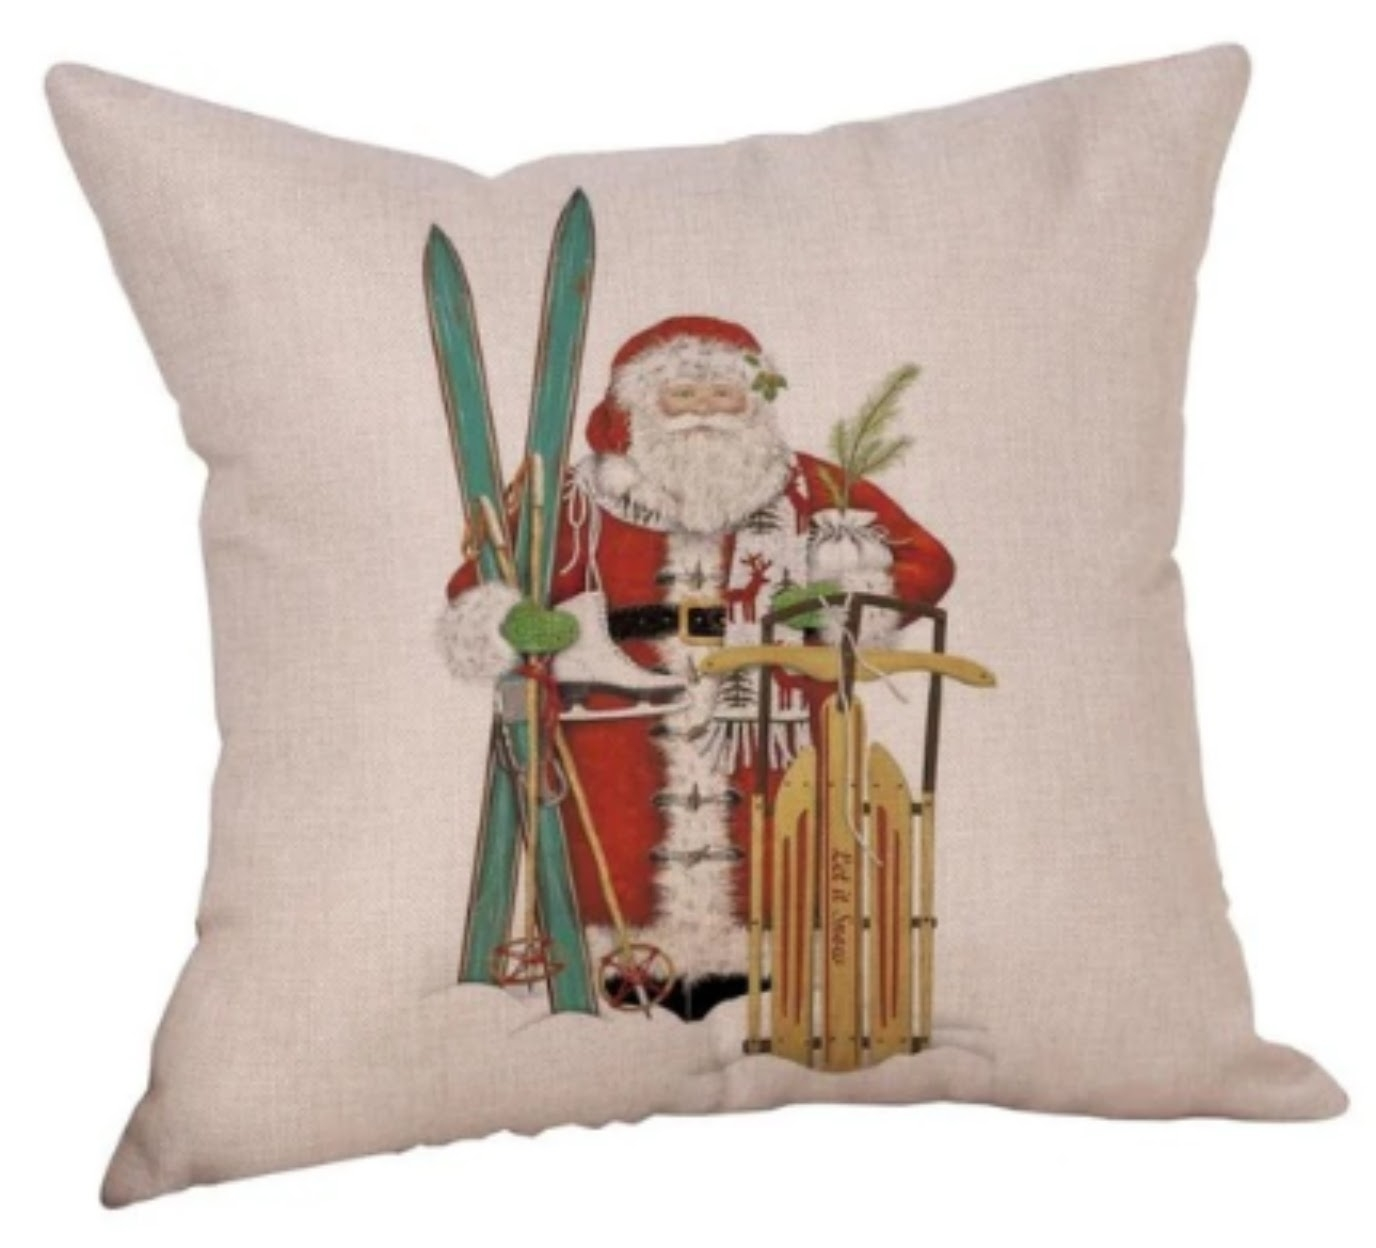 BUY 2 GET 1 Free Festive Christmas Pillow Covers - Santa with Skis